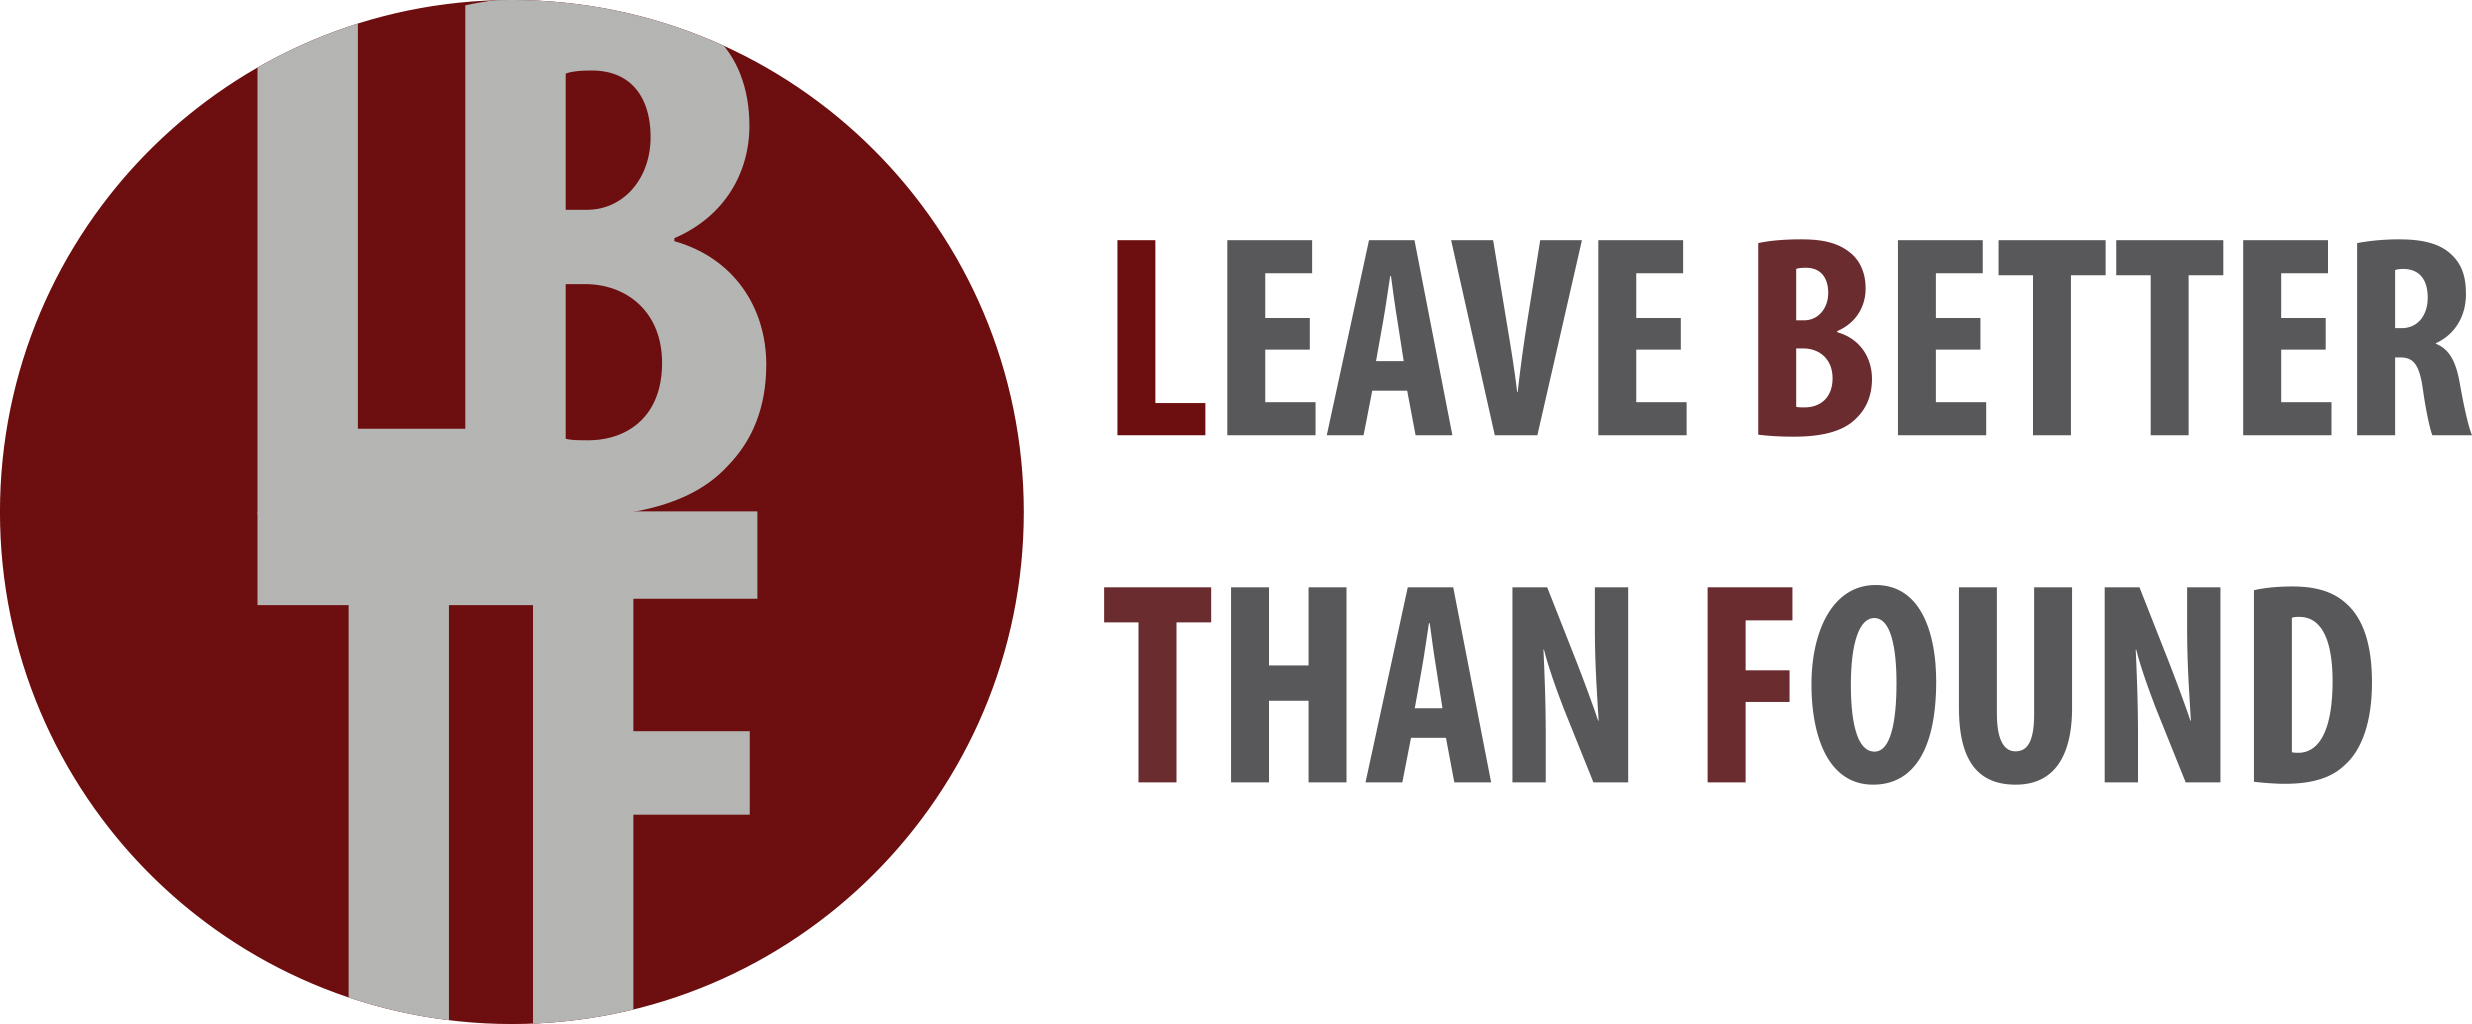 Leave Better Than Found Logo